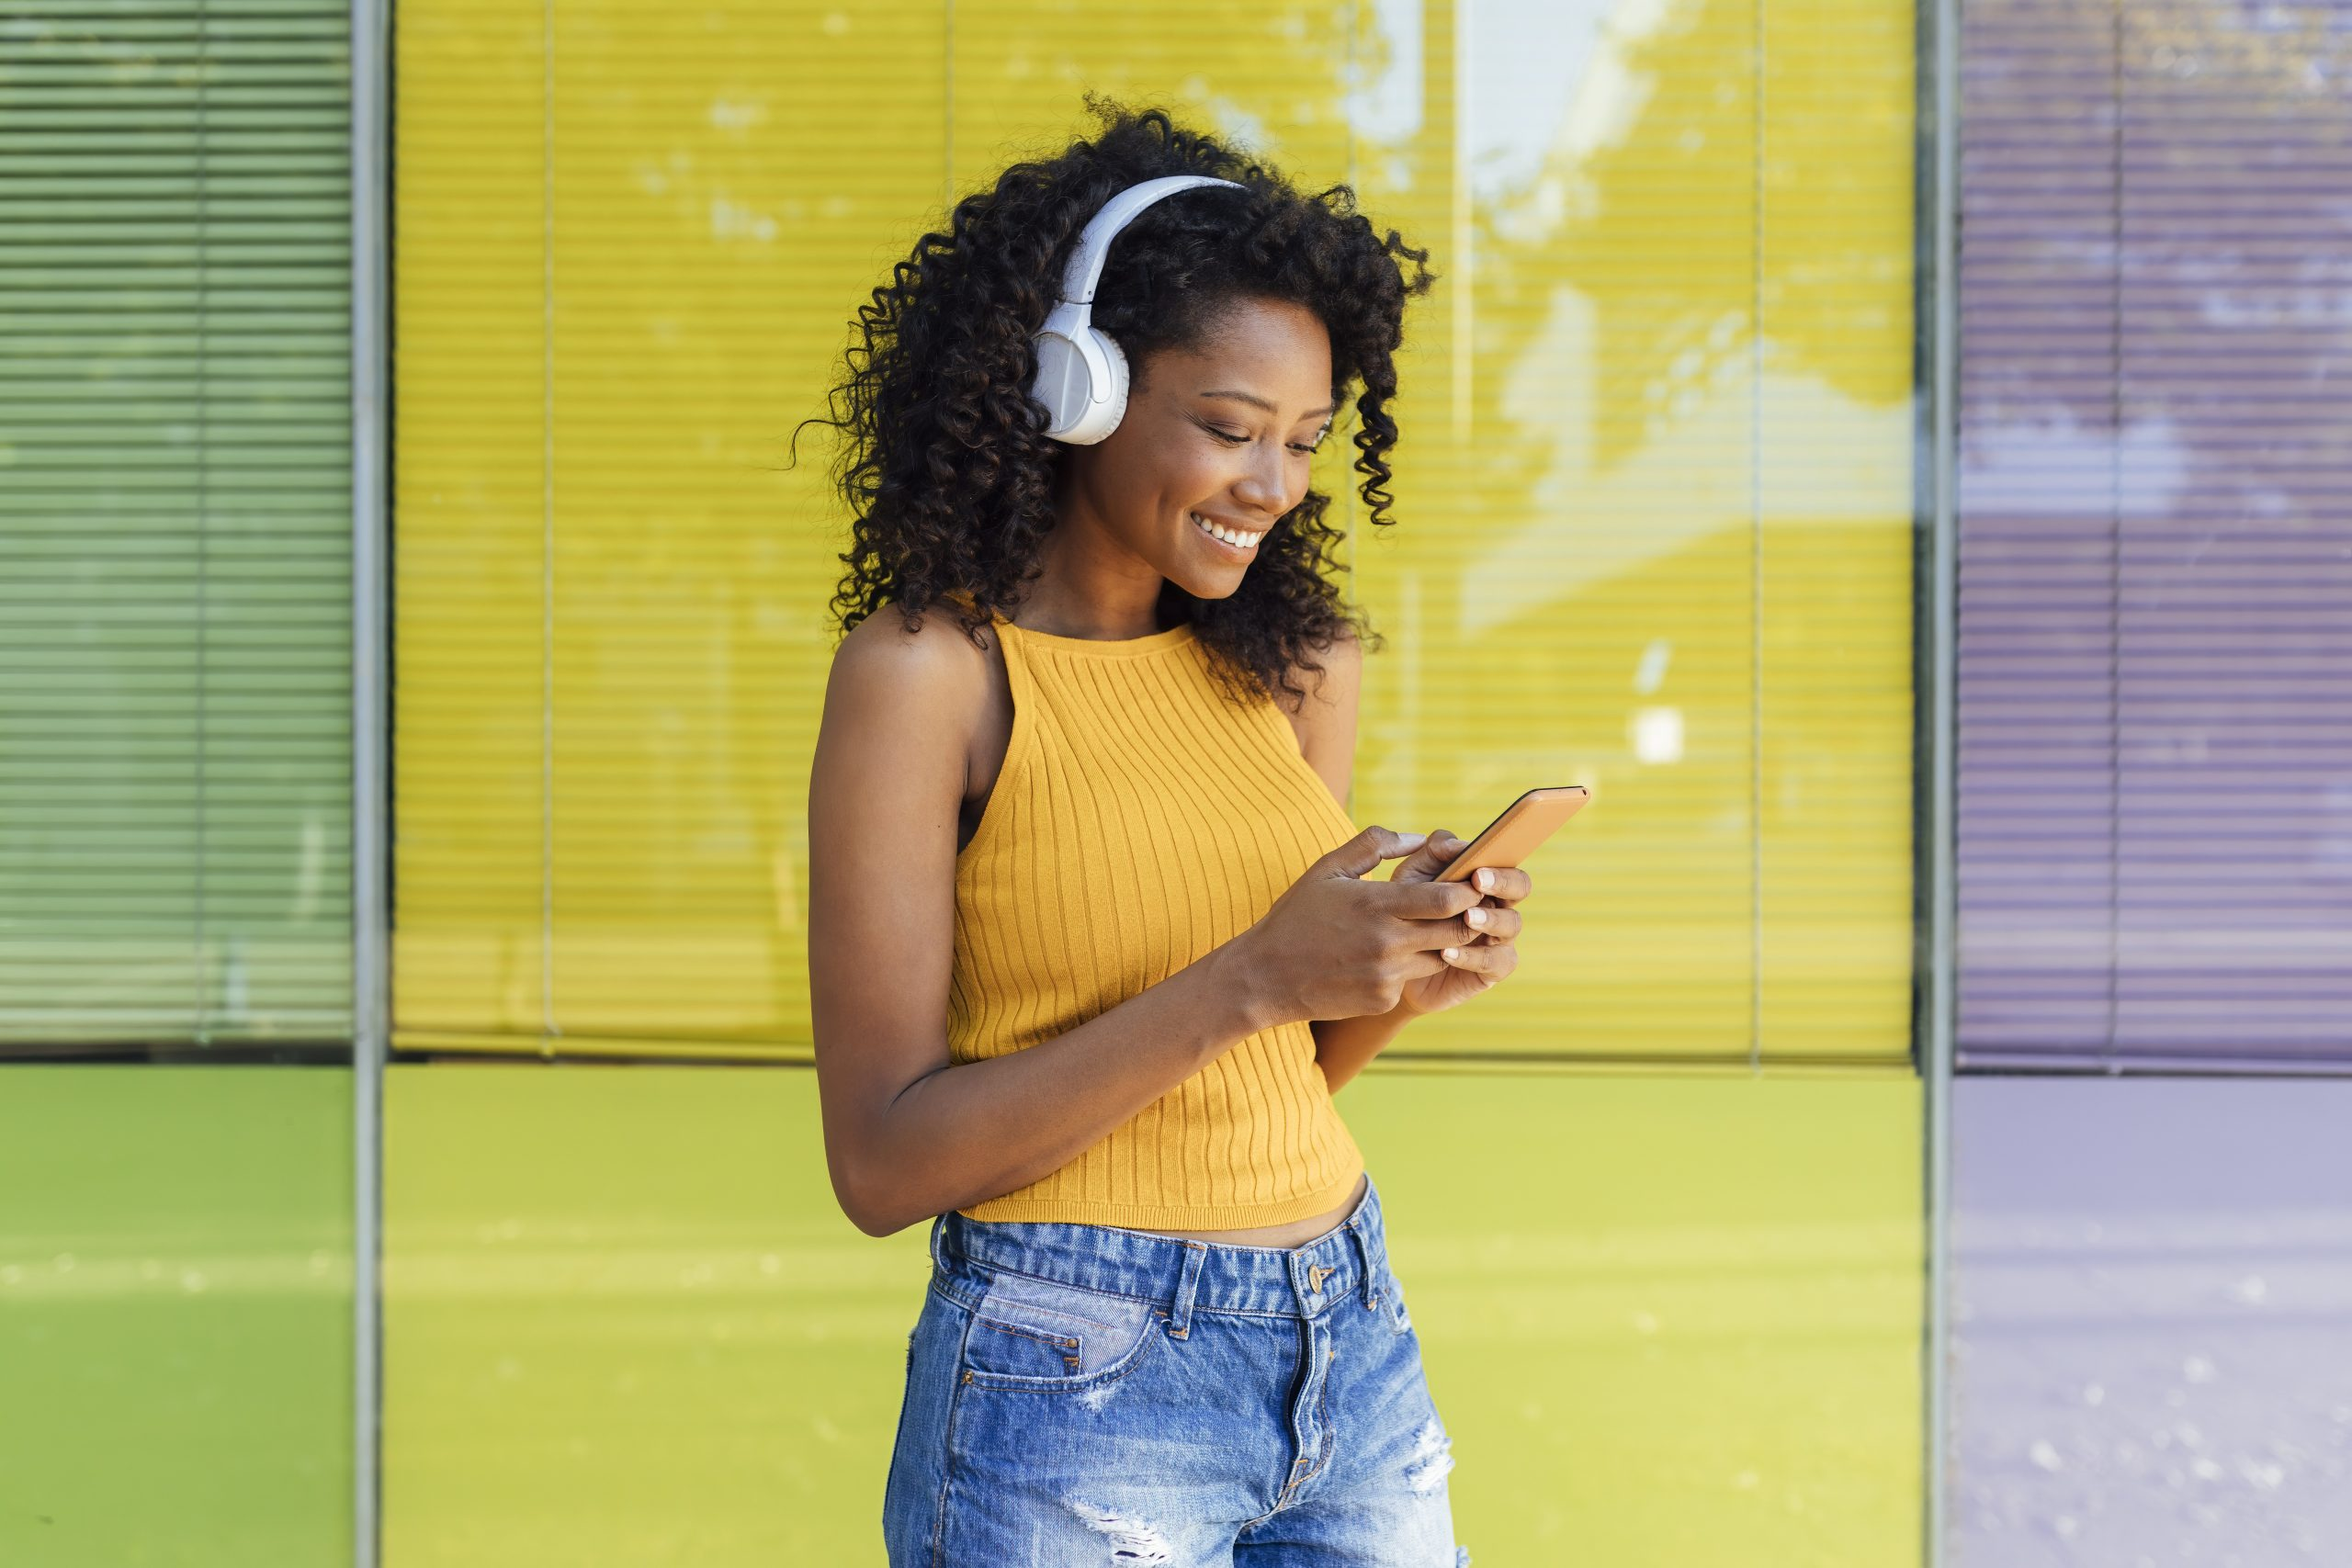 Smiling young woman text messaging through smart phone while standing in front of yellow window